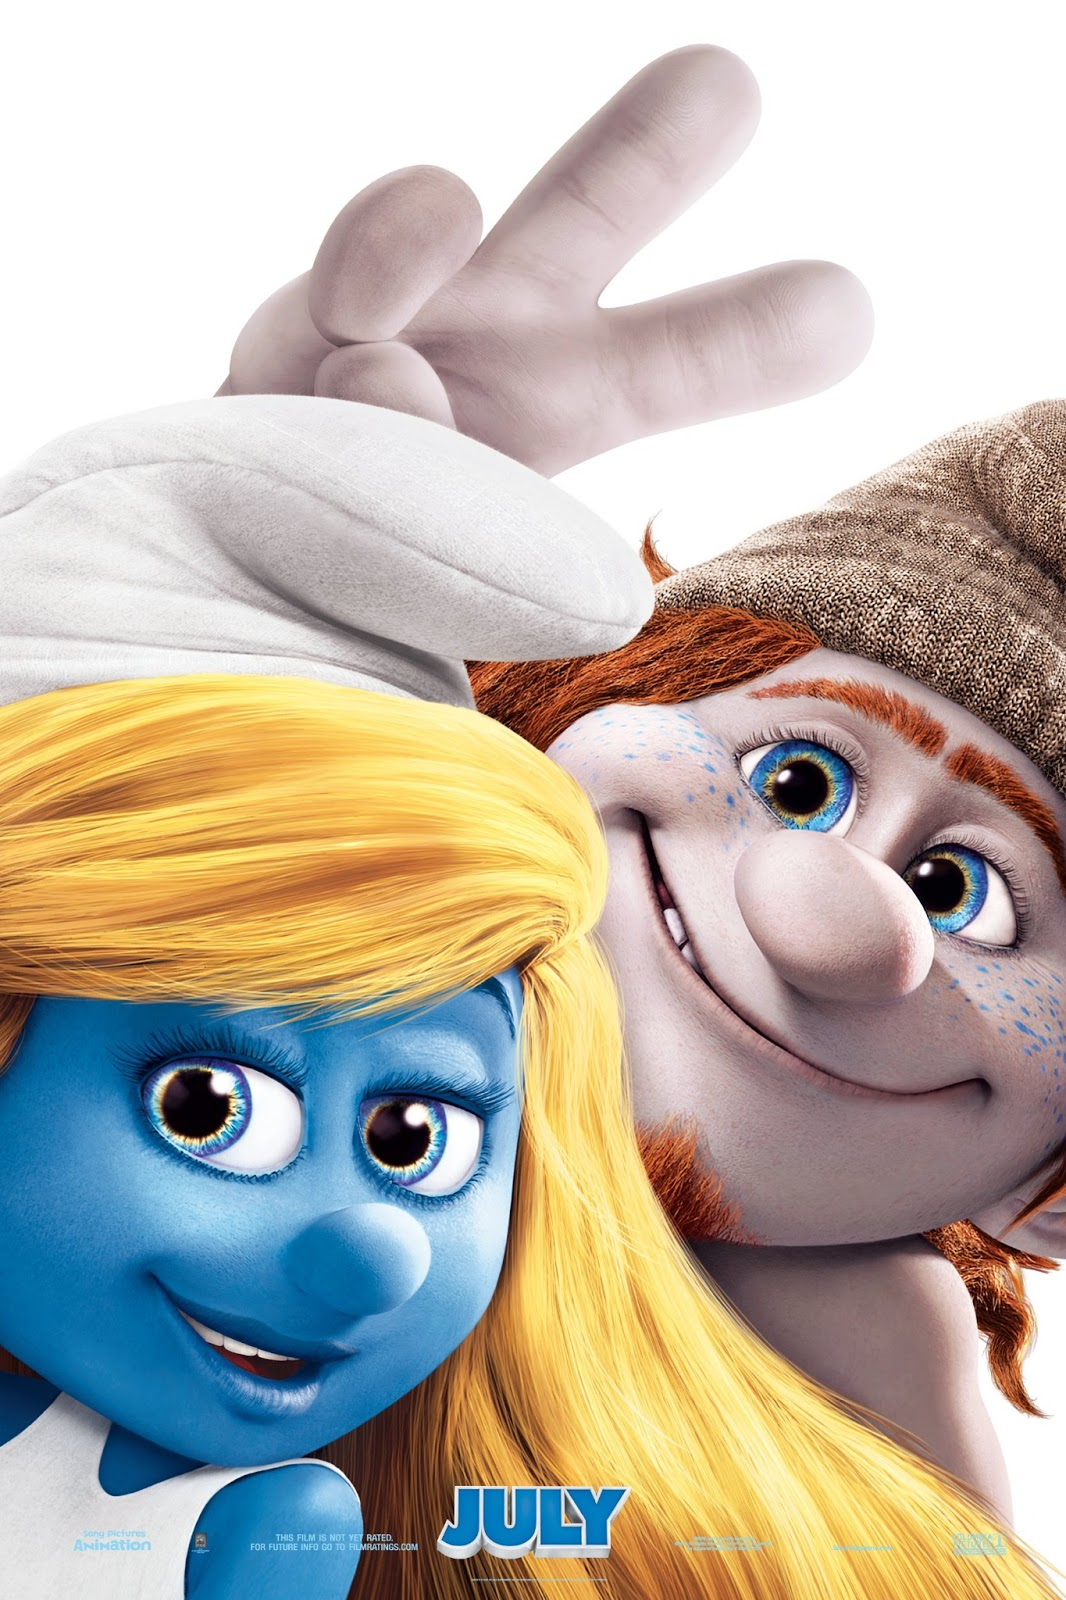 The Smurfs 2 Hd Wallpapers Hd Wallpapers High Definition Free Background